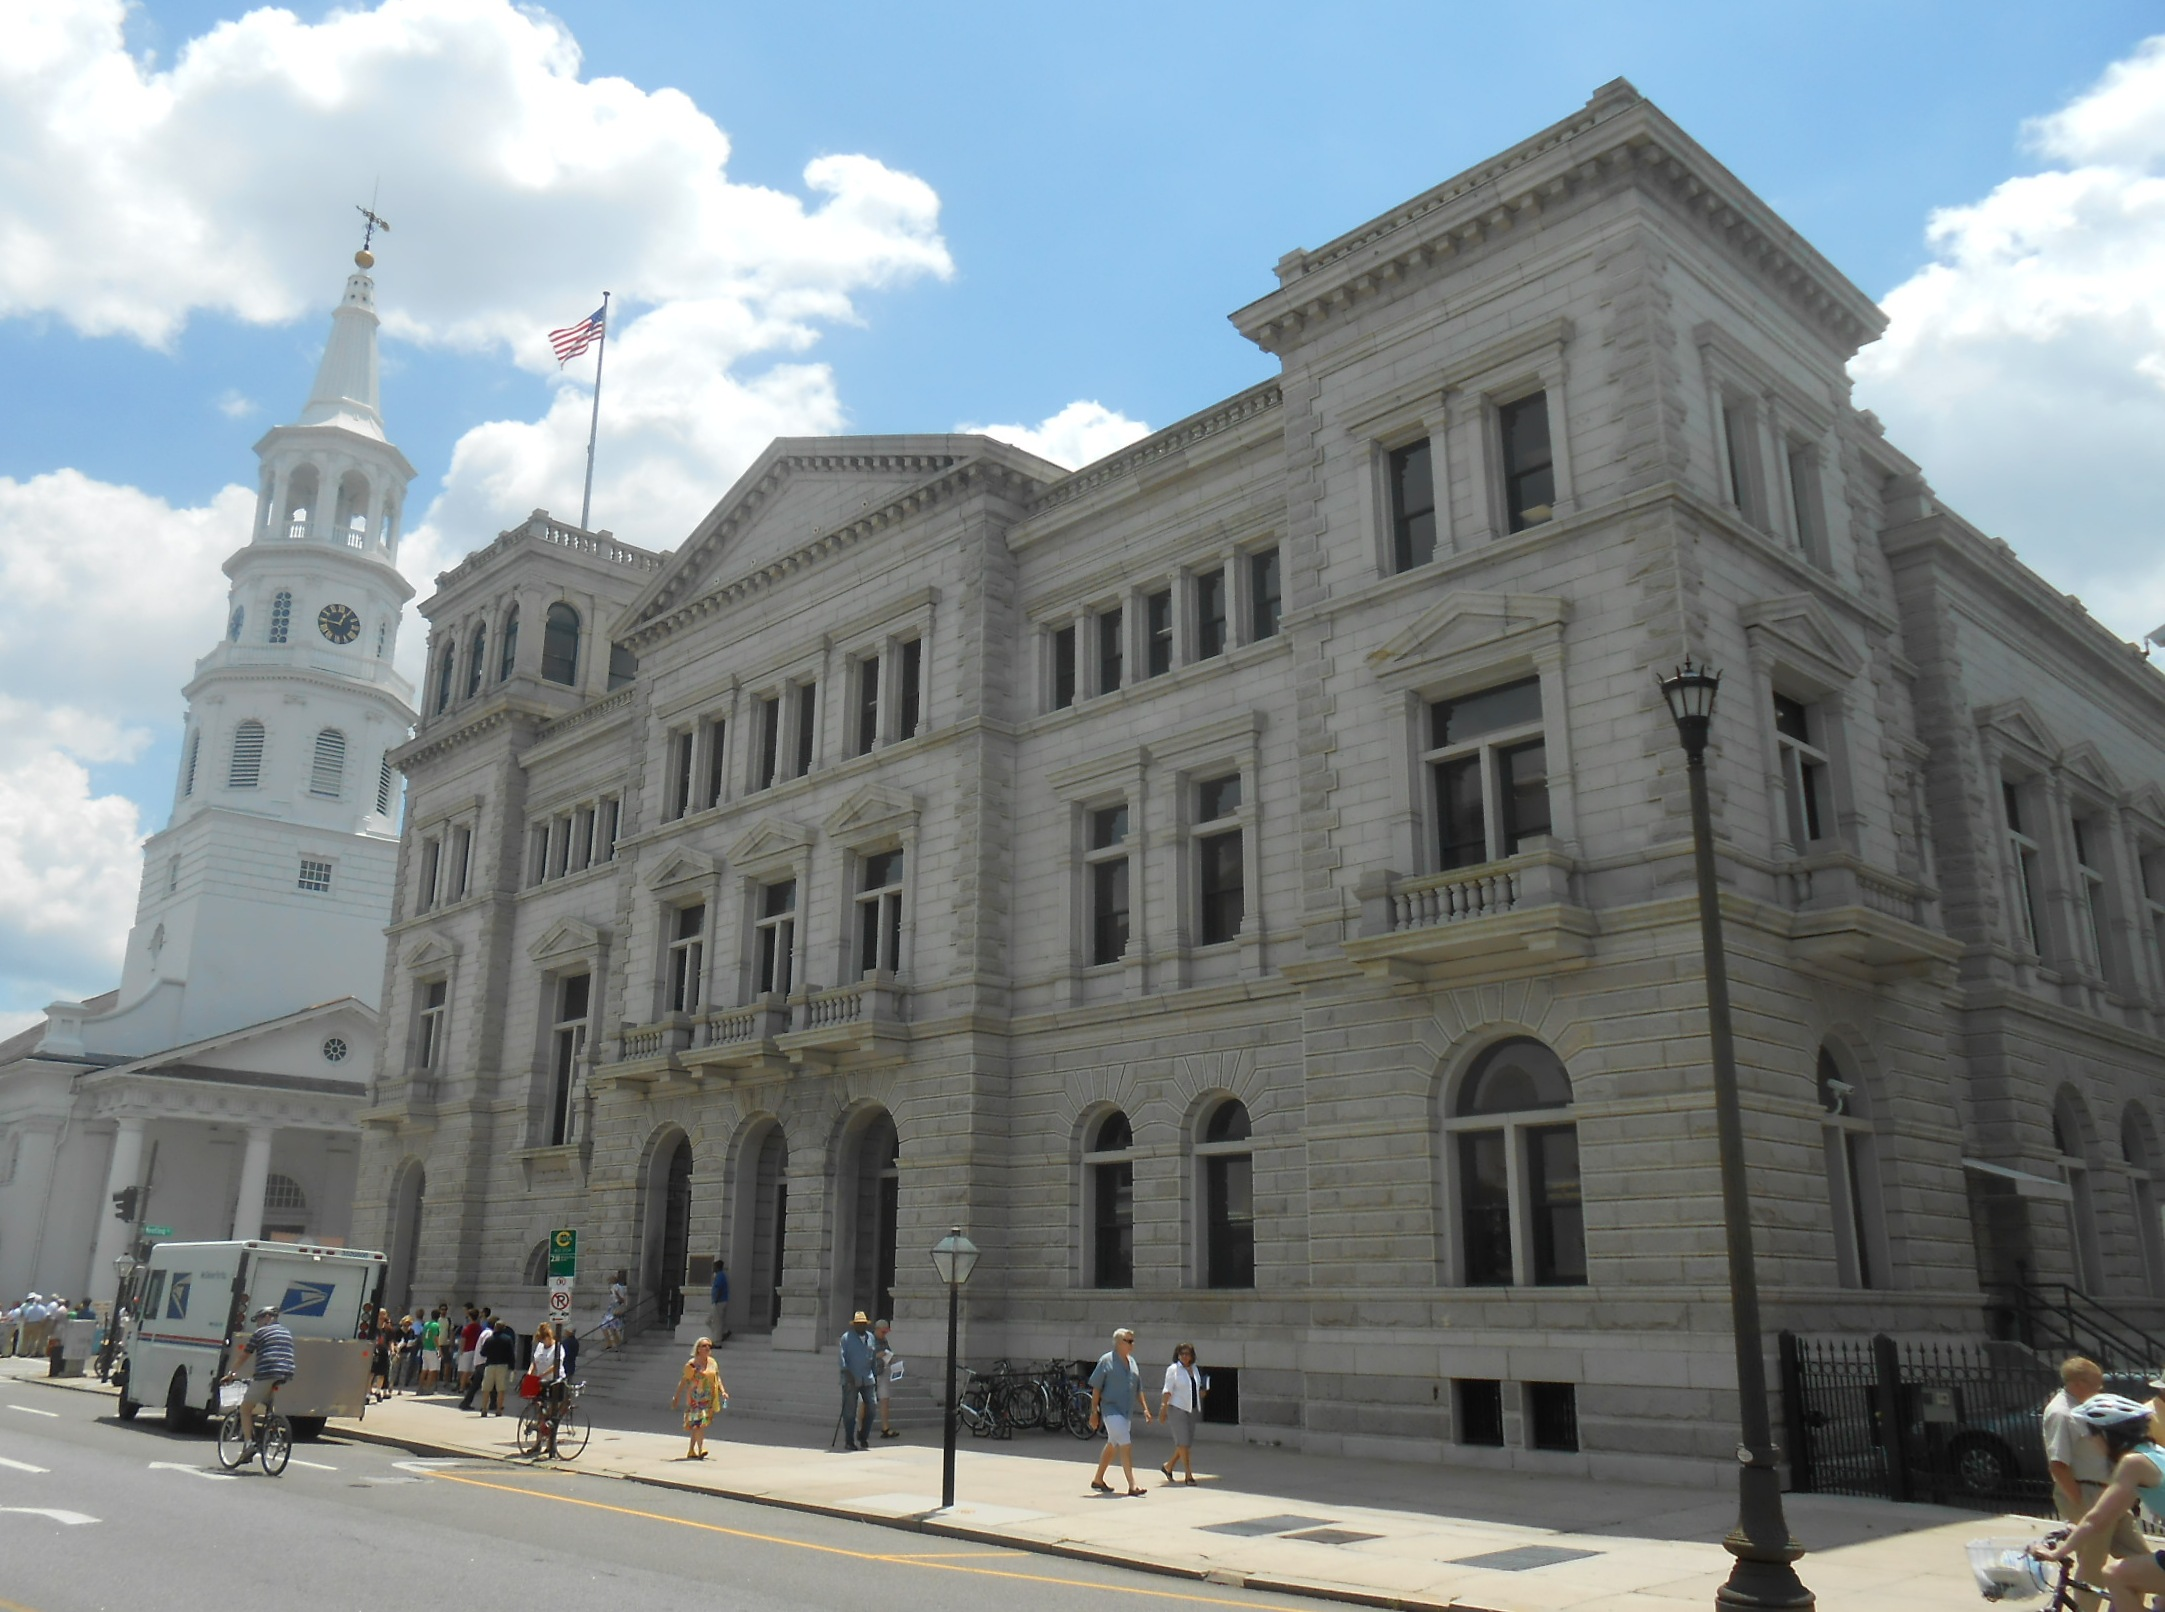 United States Post Office and Courthouse (Charleston, South